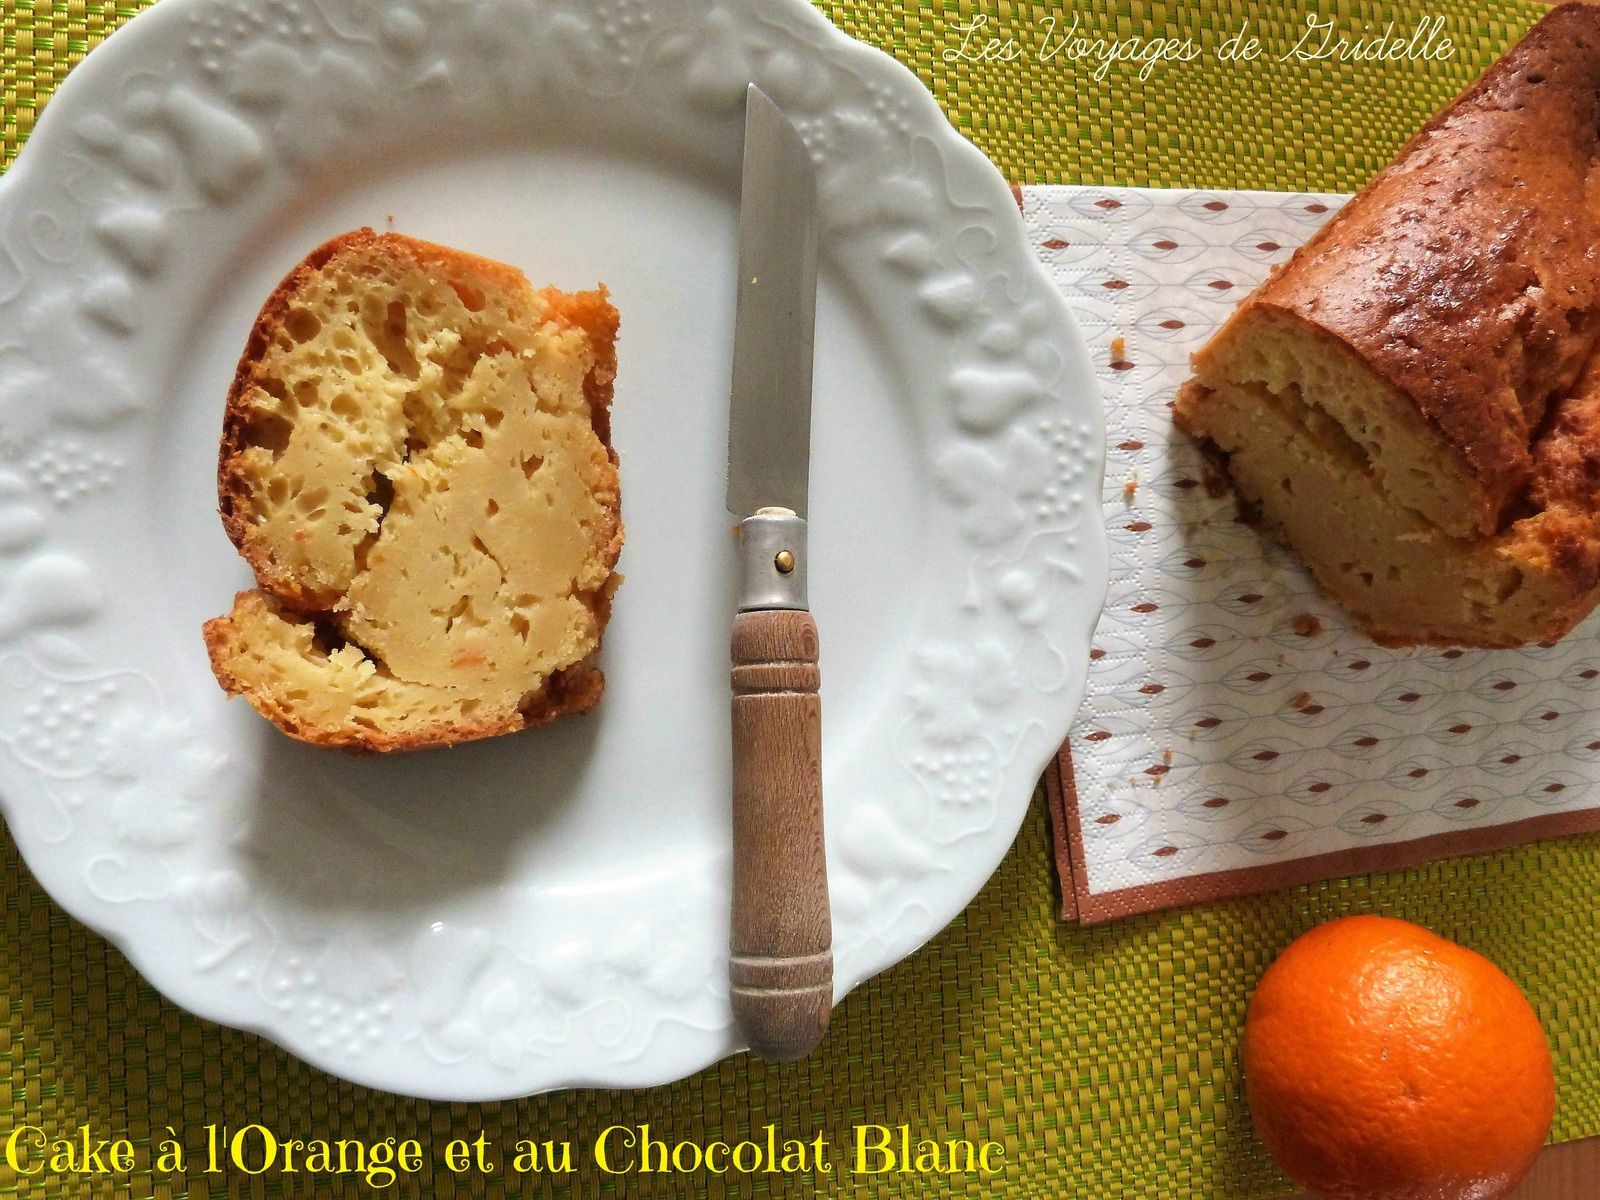 Cake à l'Orange et au Chocolat Blanc